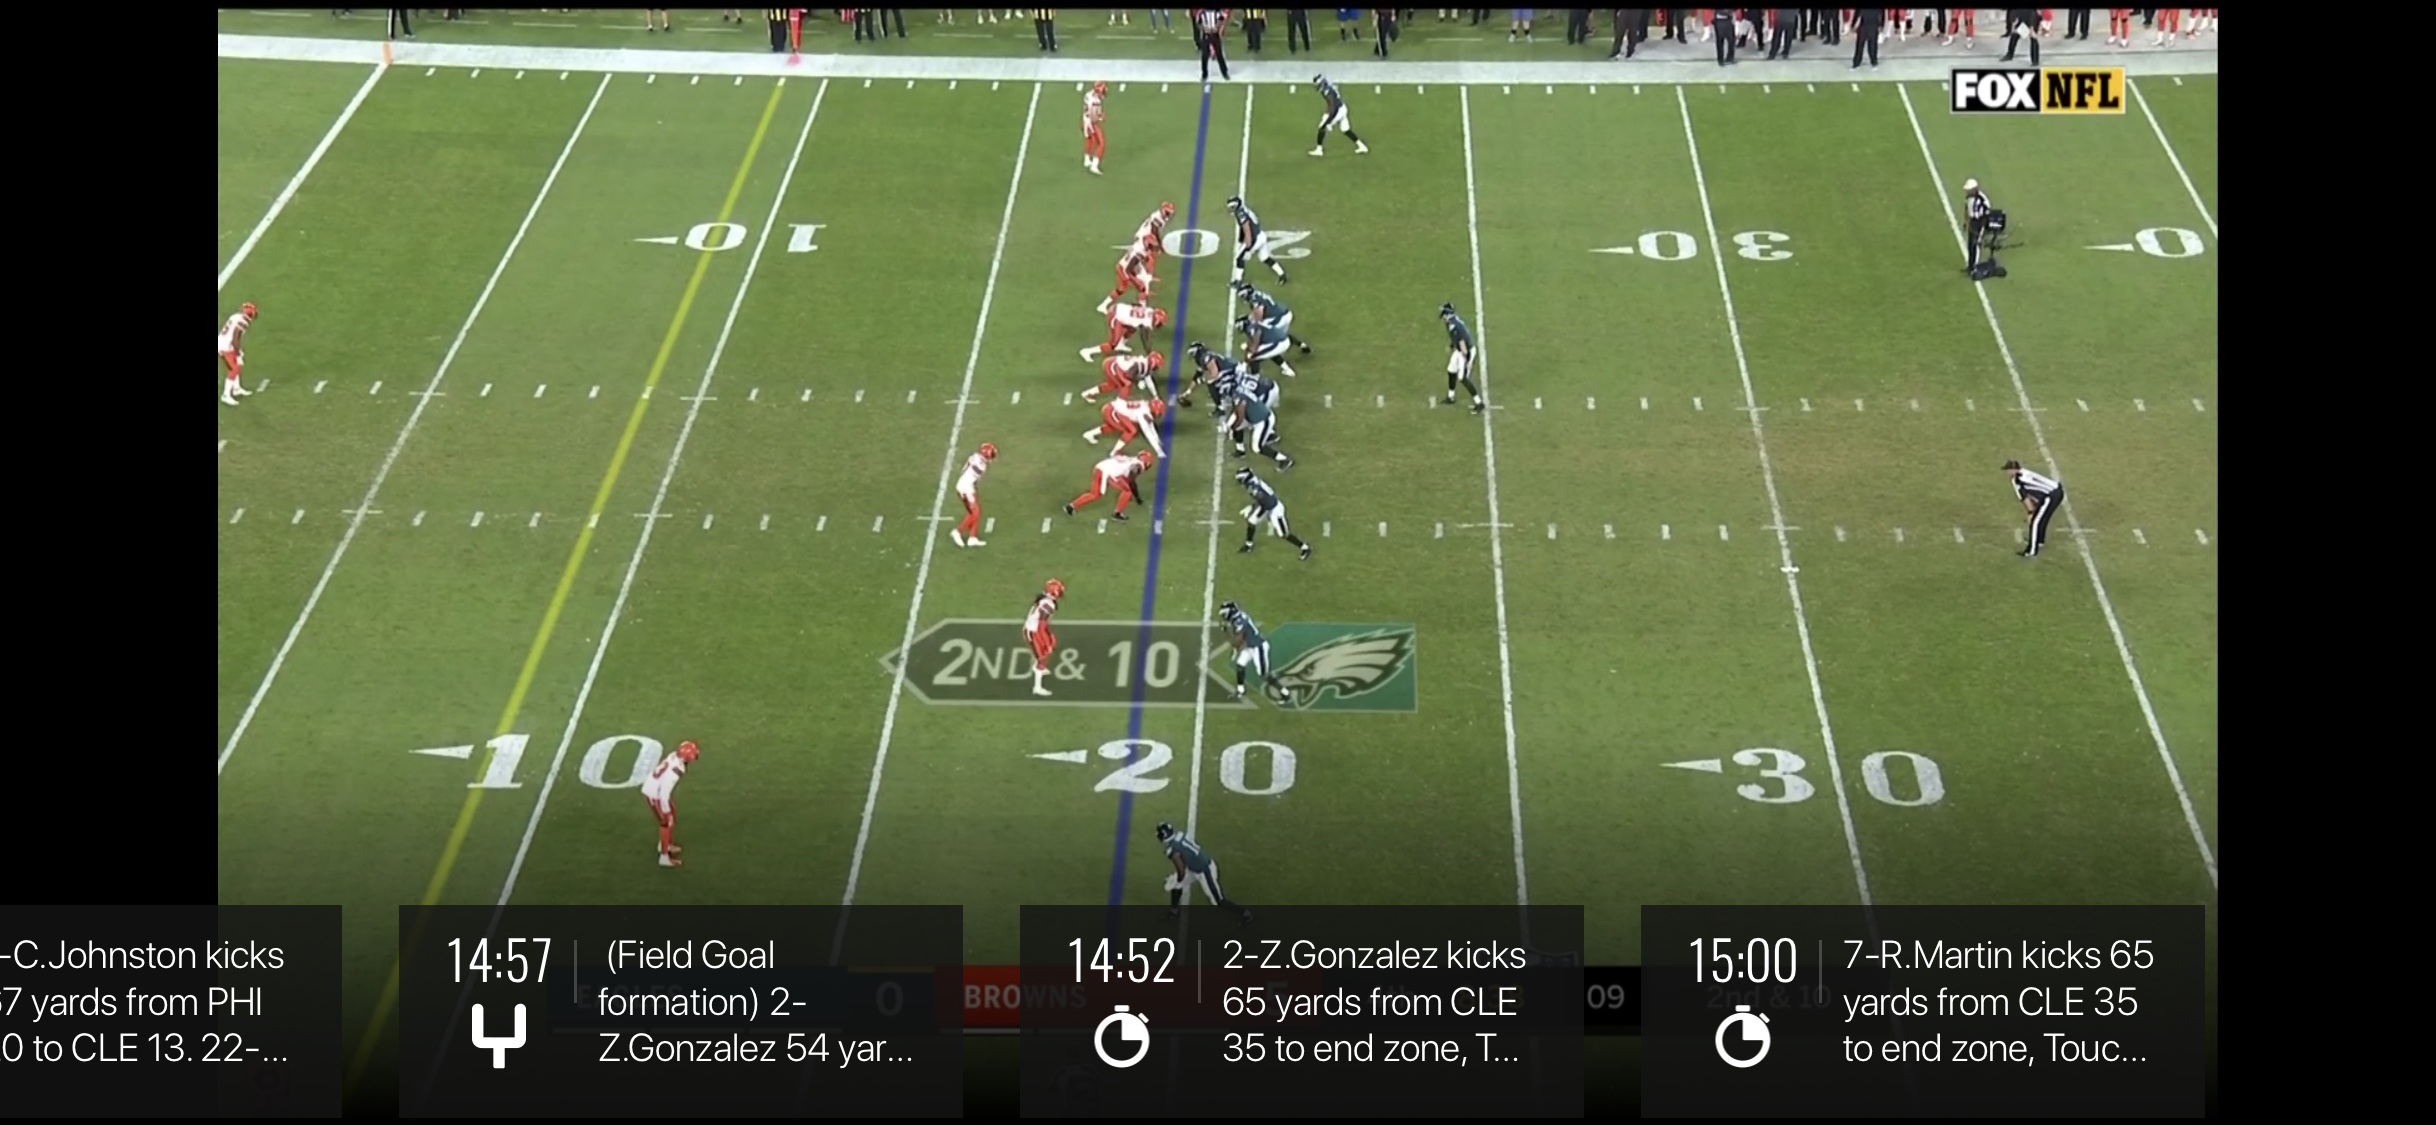 The new NFL Gamepass mobile video player - Sport: The Digital (r